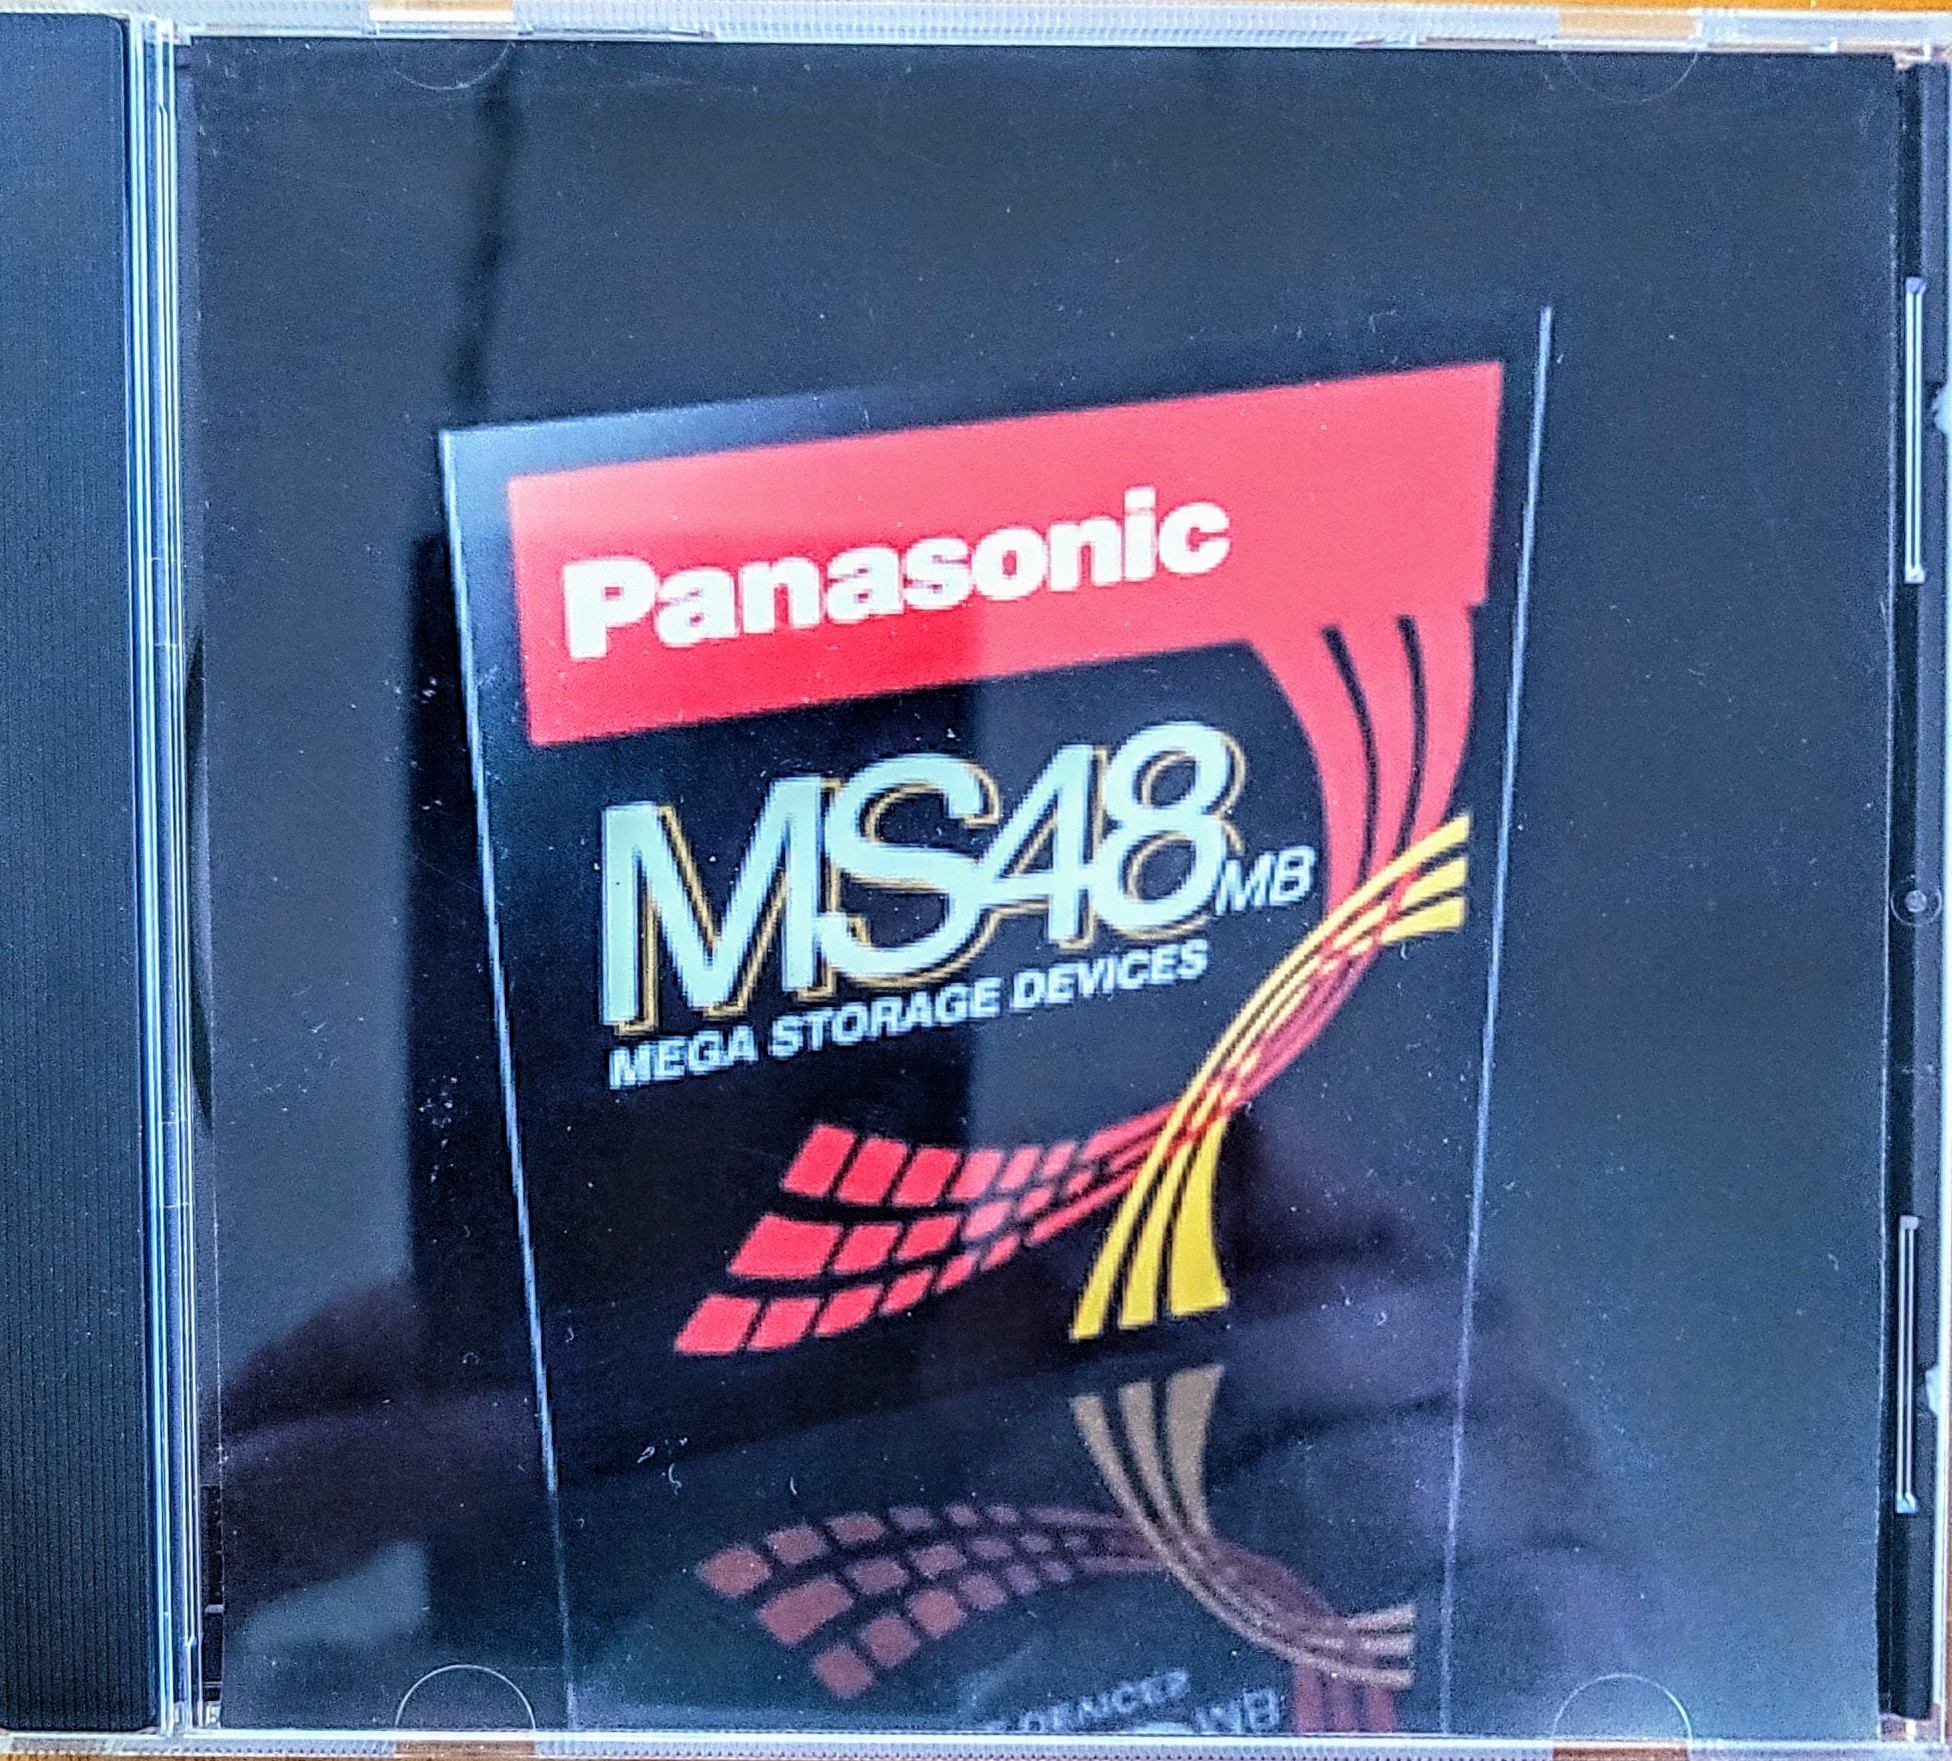 panasonic_cd jewel case_mega storage devices_16